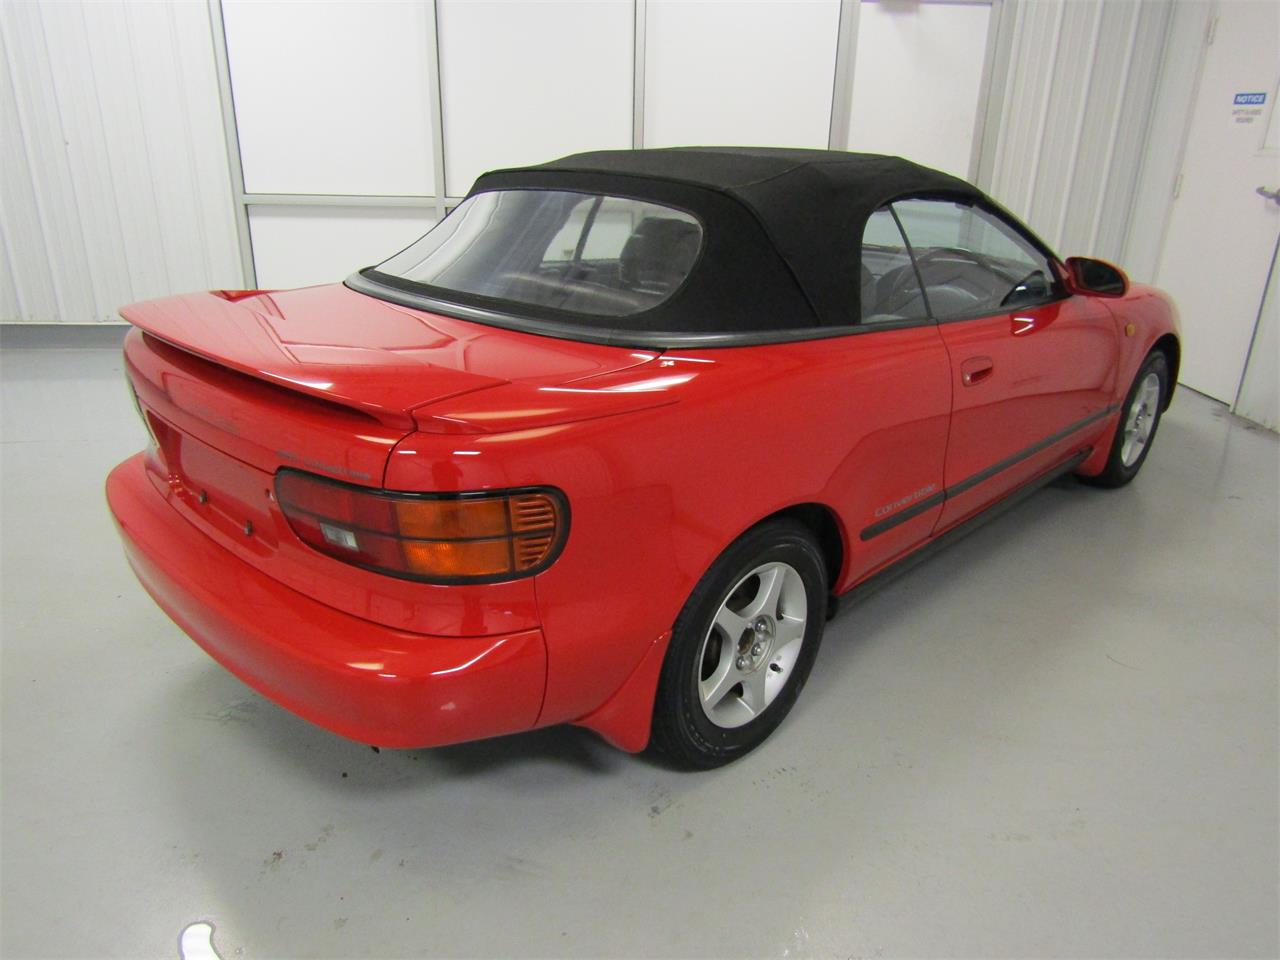 Large Picture of 1991 Toyota Celica - OV71